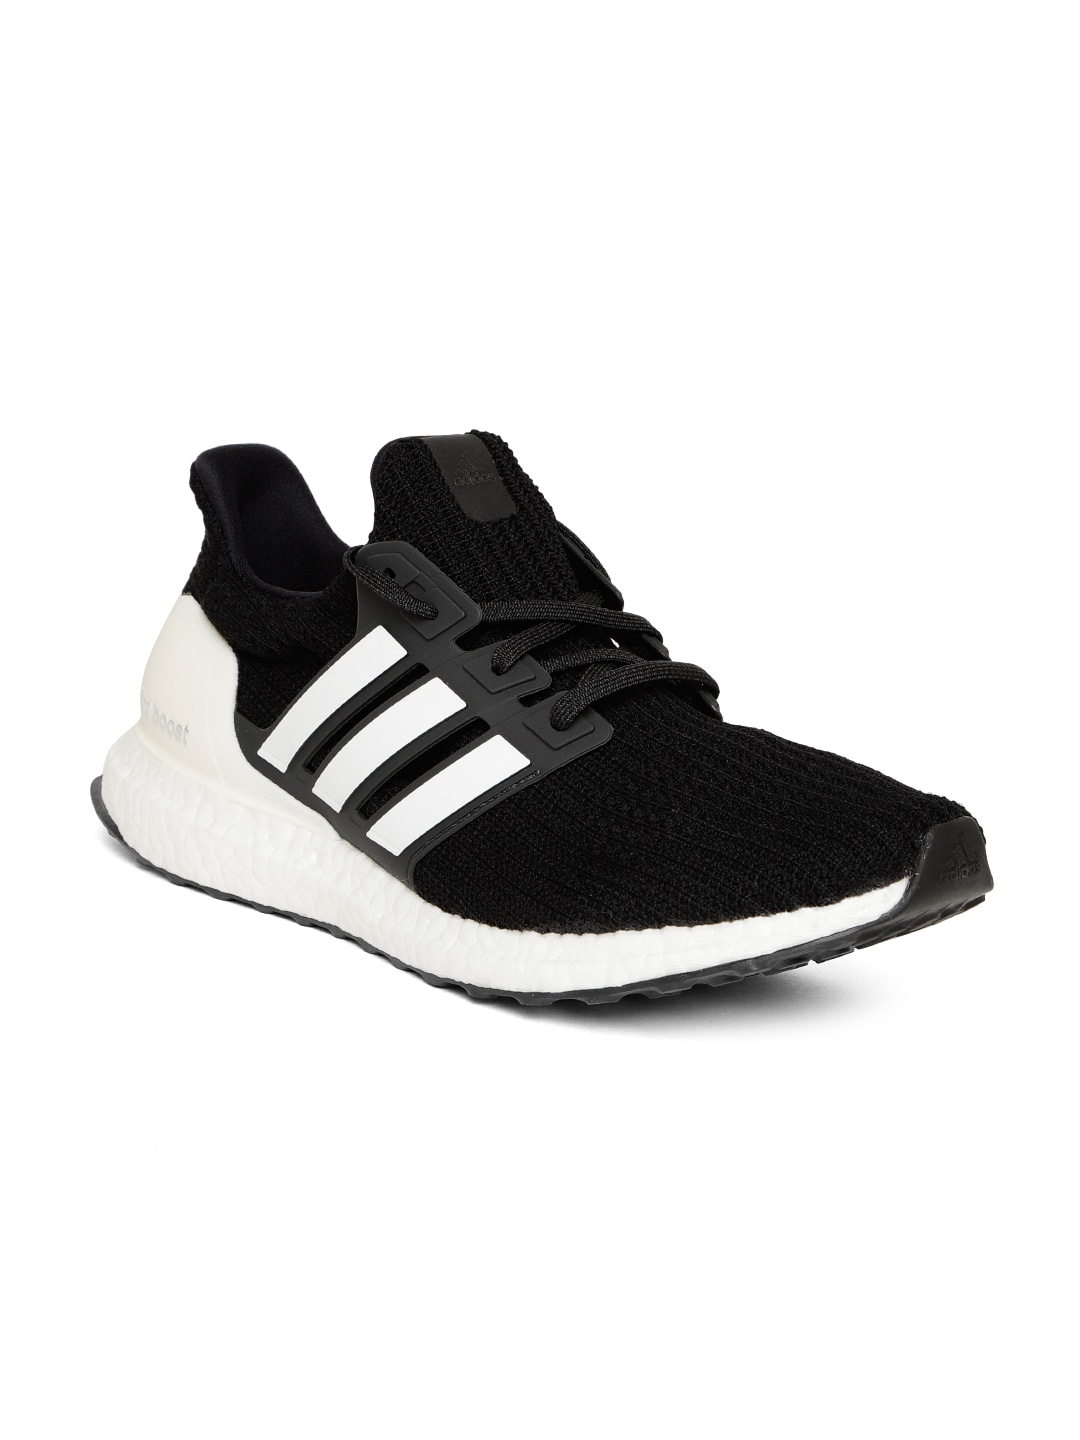 51dbd73f5a9be Adidas Ultraboost - Buy Adidas Ultraboost online in India